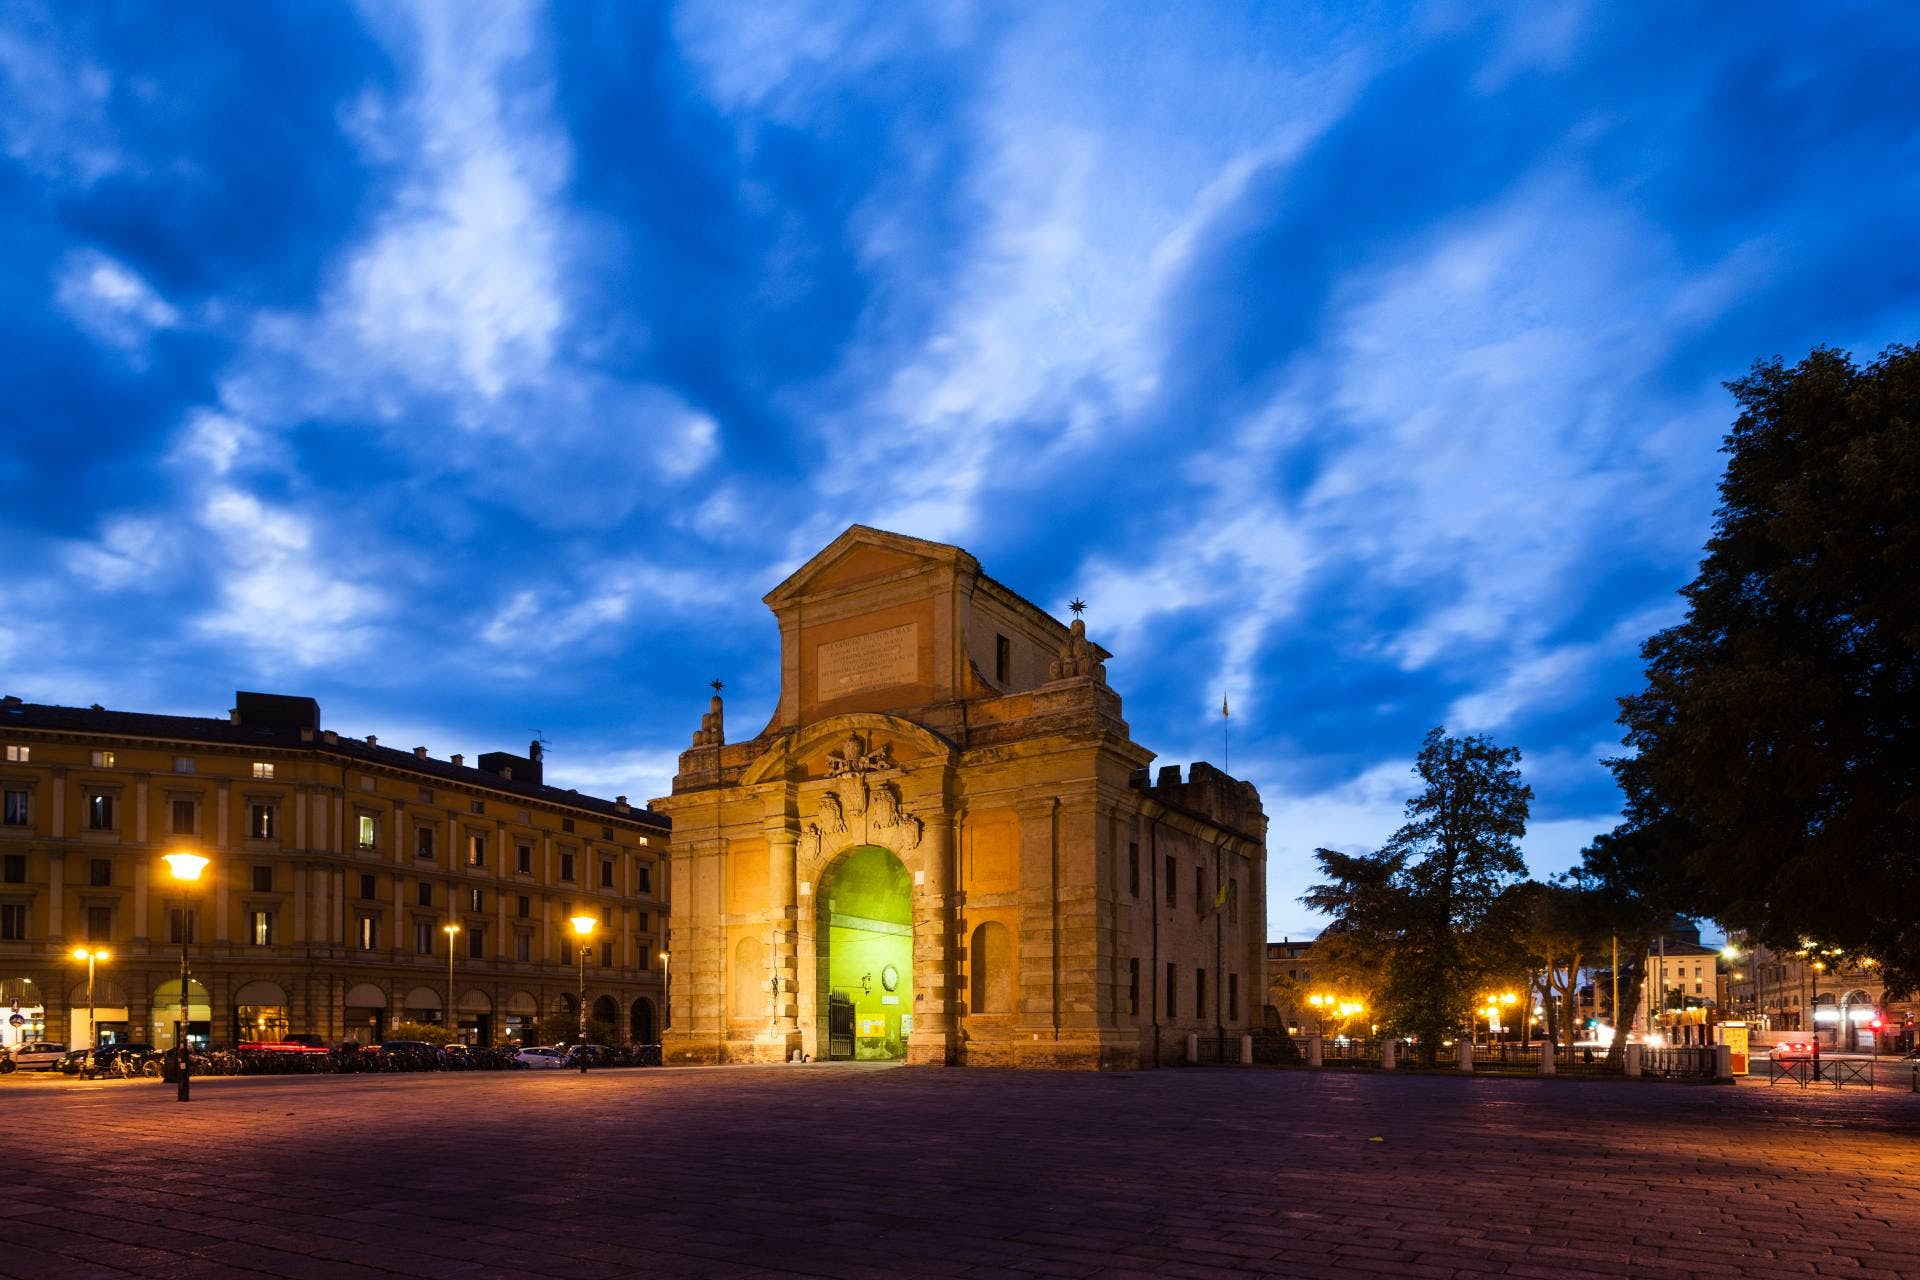 Old Town Bologna: Murder Mystery image